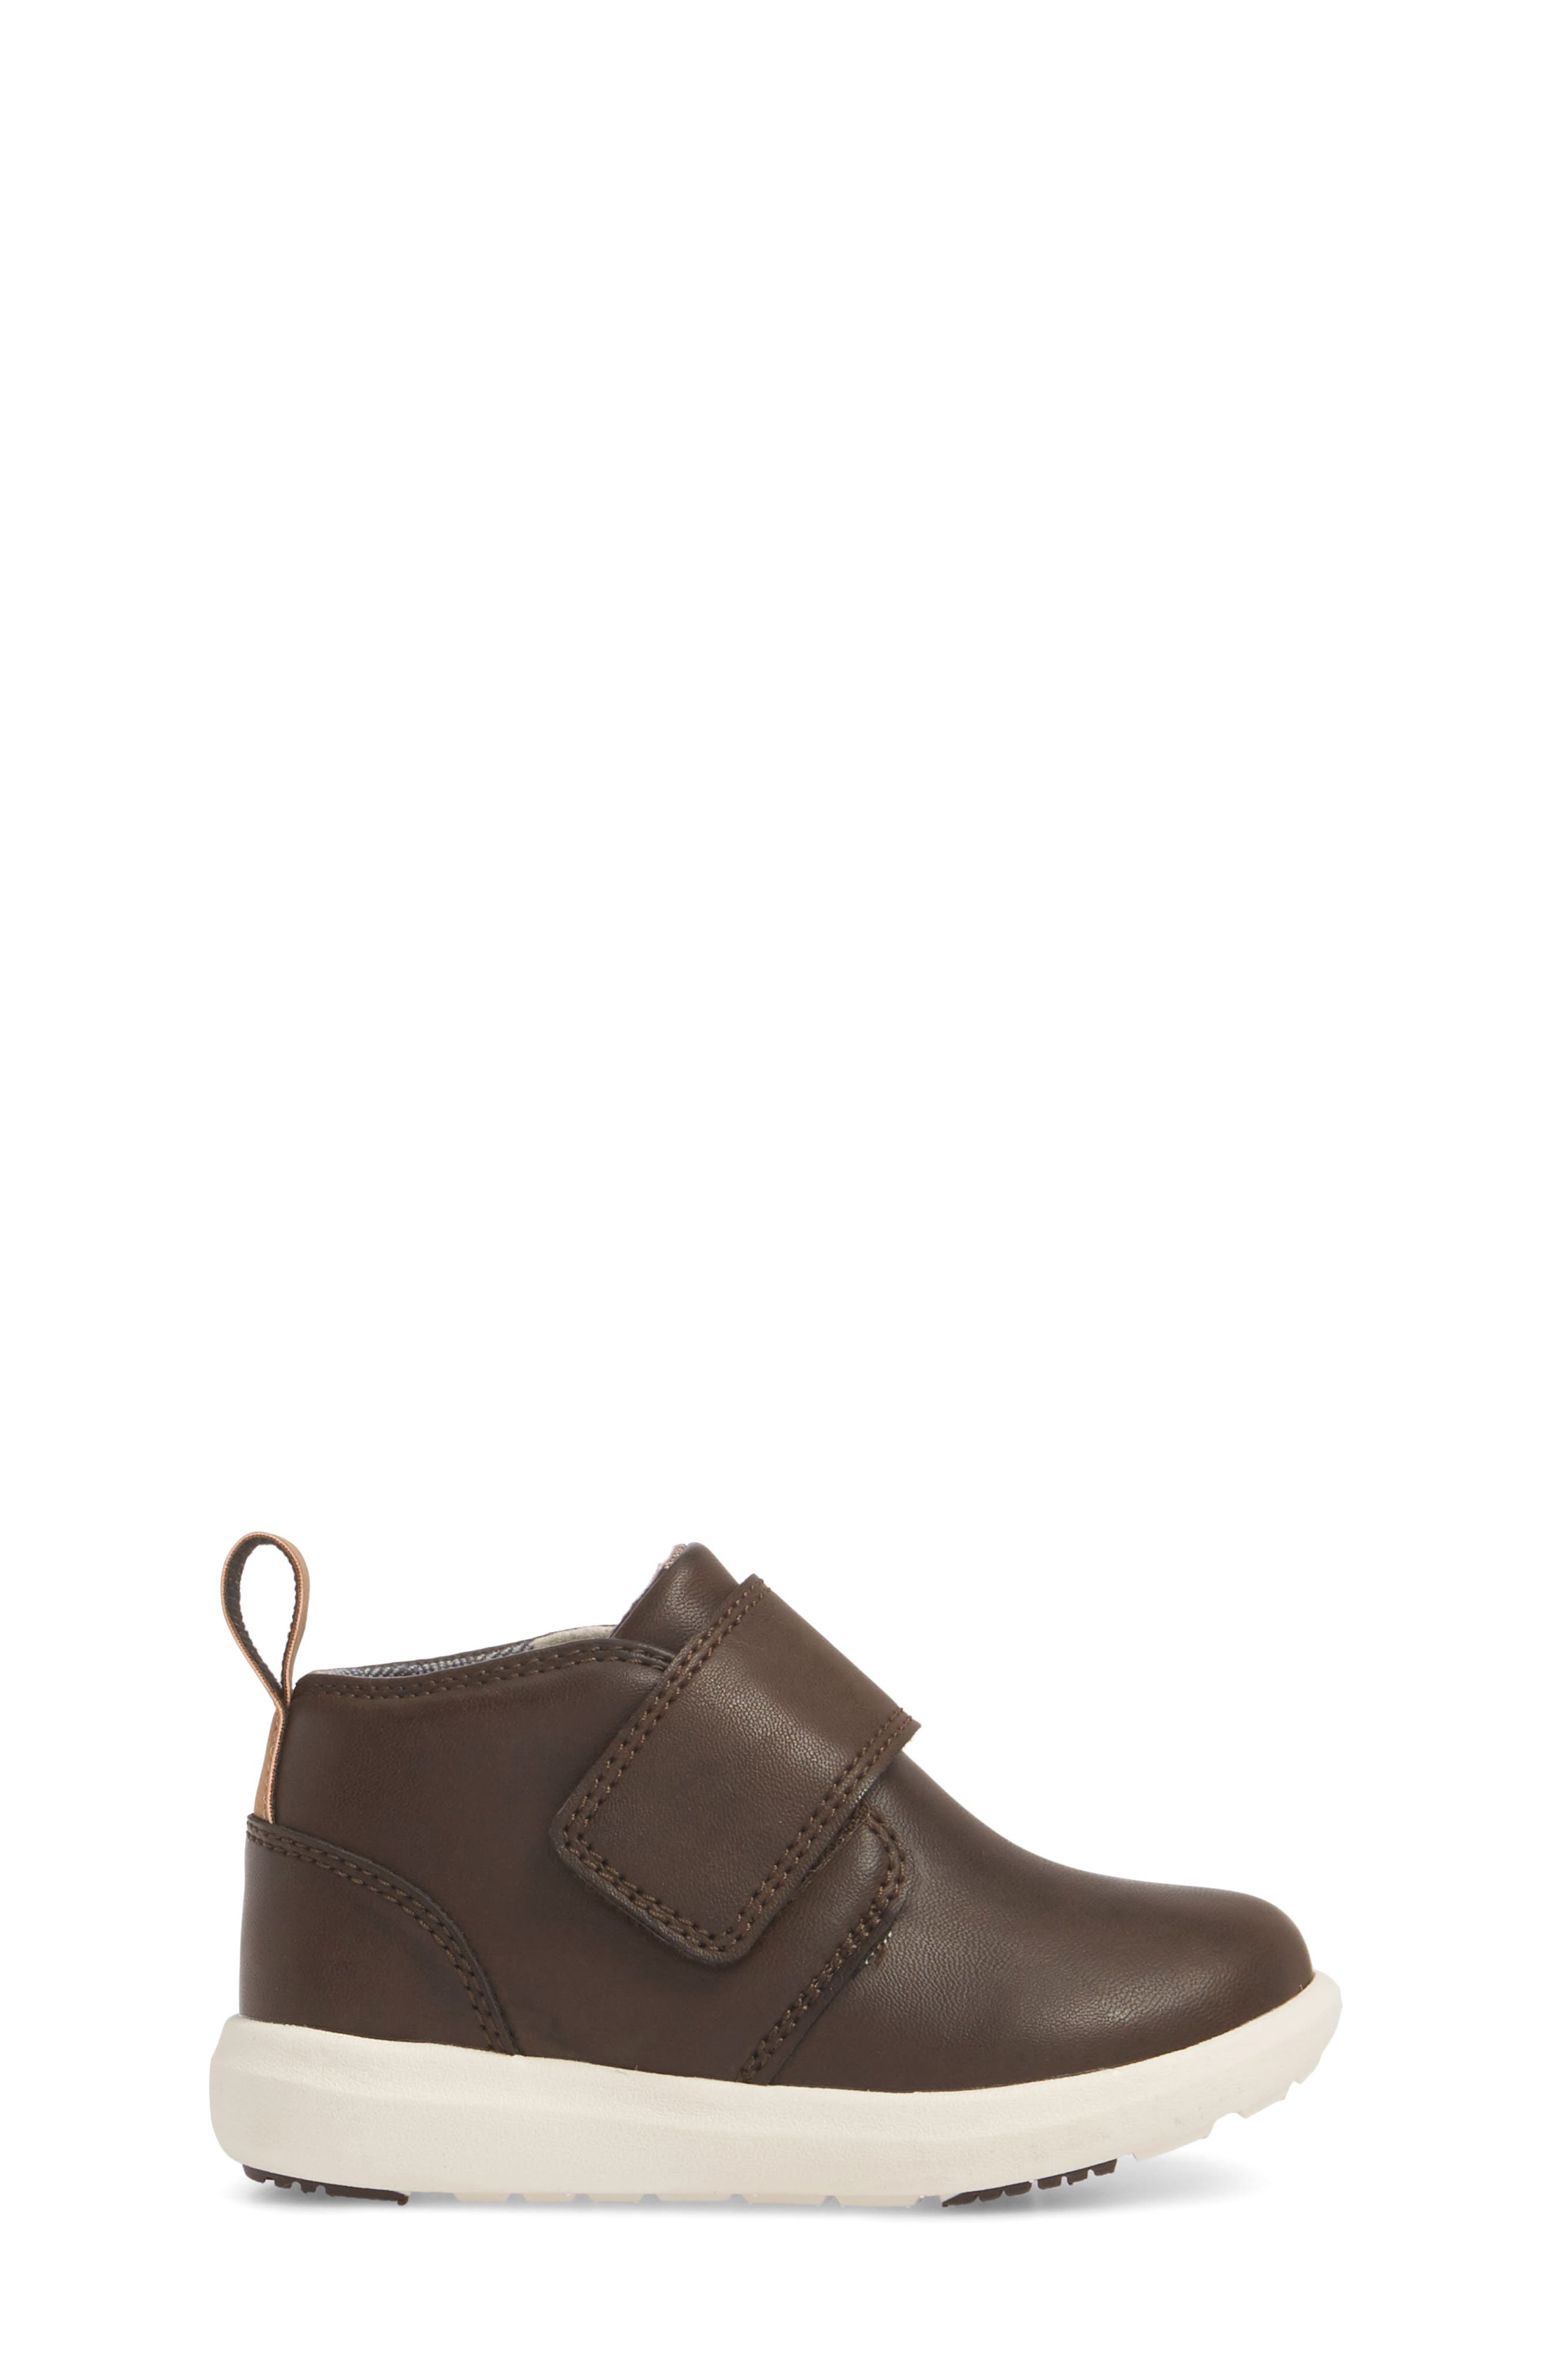 Oliver Low Bootie Sneaker,                             Alternate thumbnail 3, color,                             CHOCOLATE FAUX LEATHER